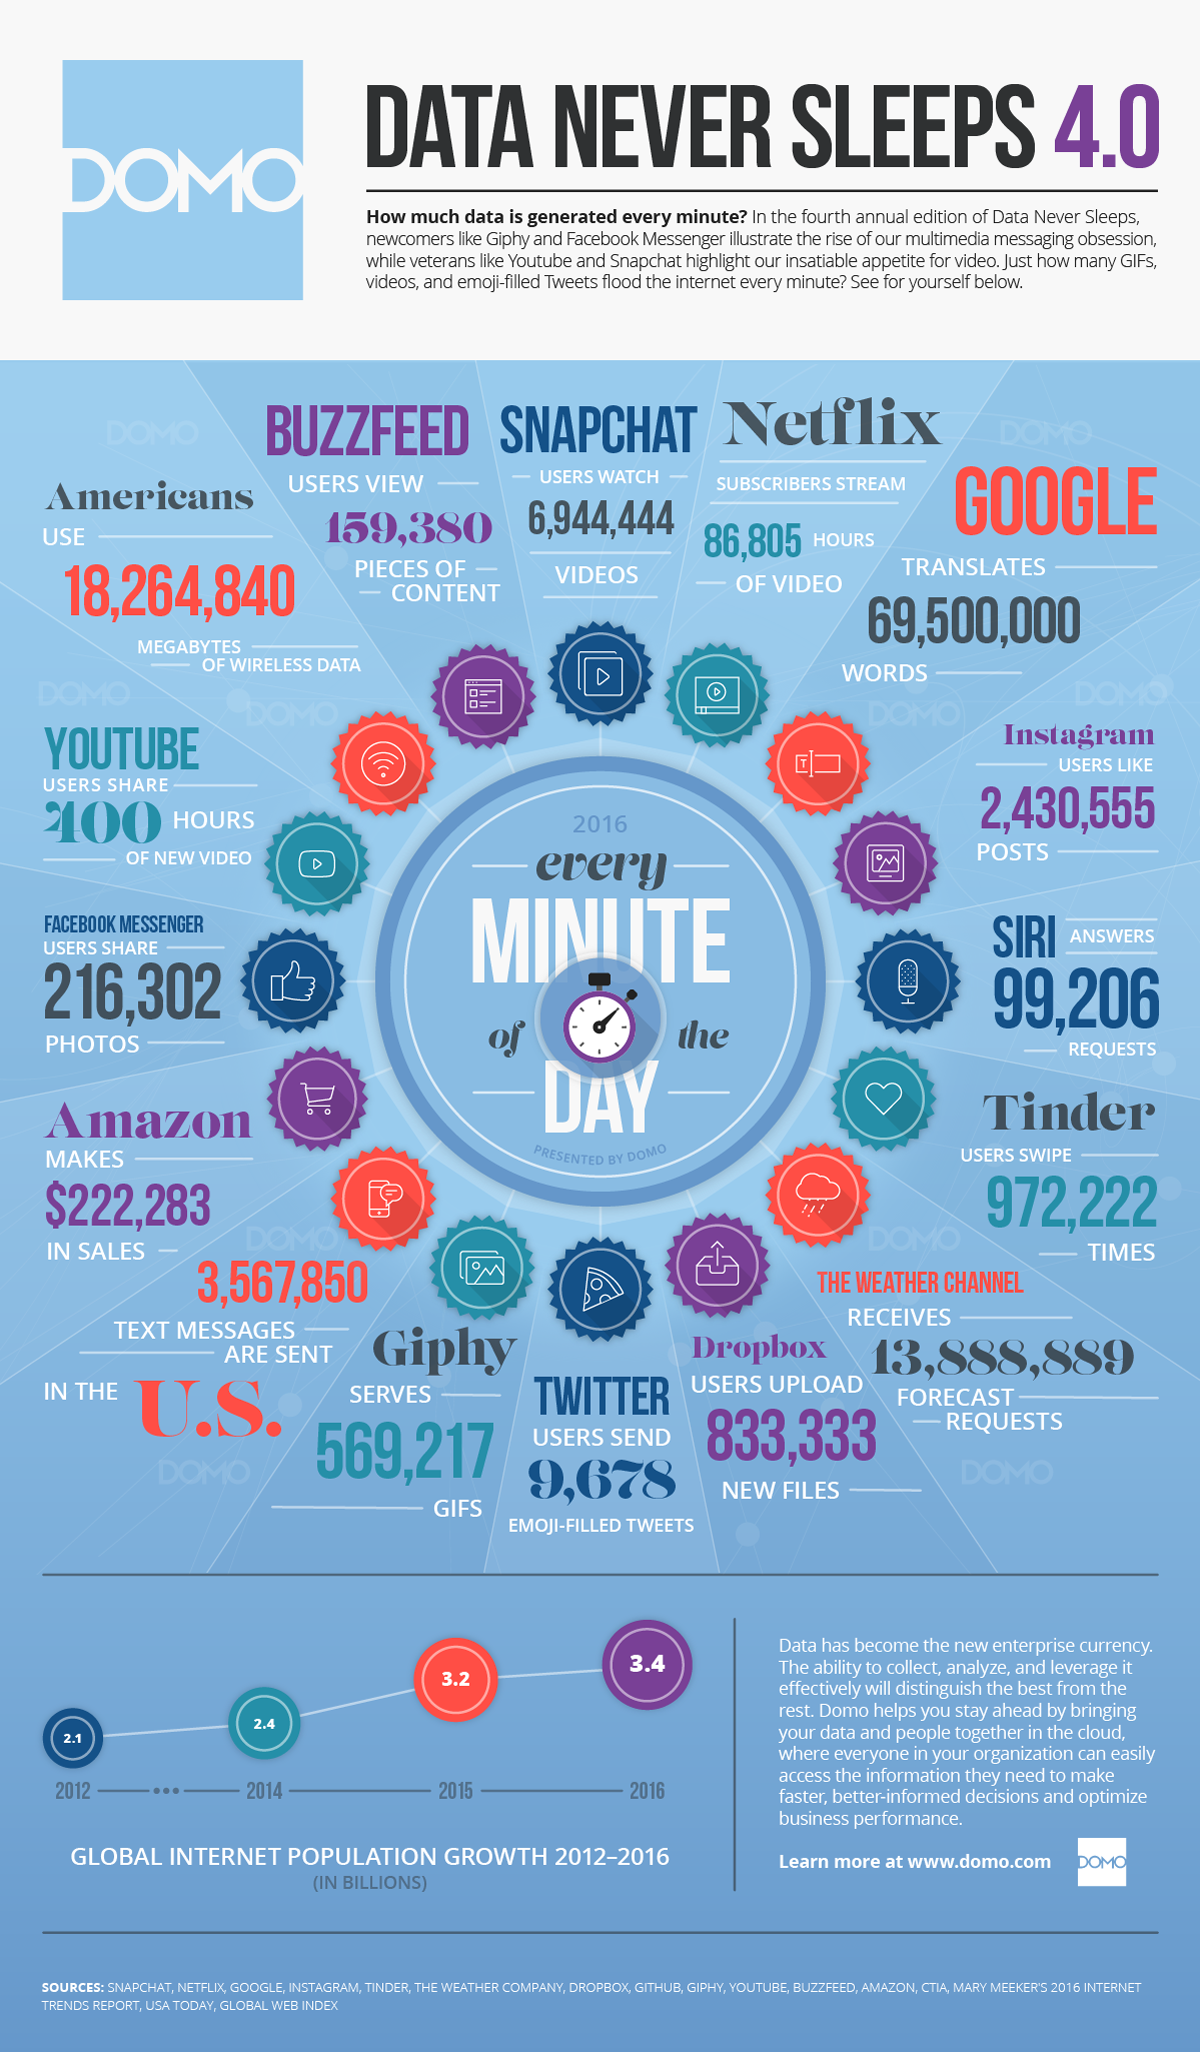 DOMO Data Never Sleeps 4.0 Infographic and What It Means for Marketing in 2016